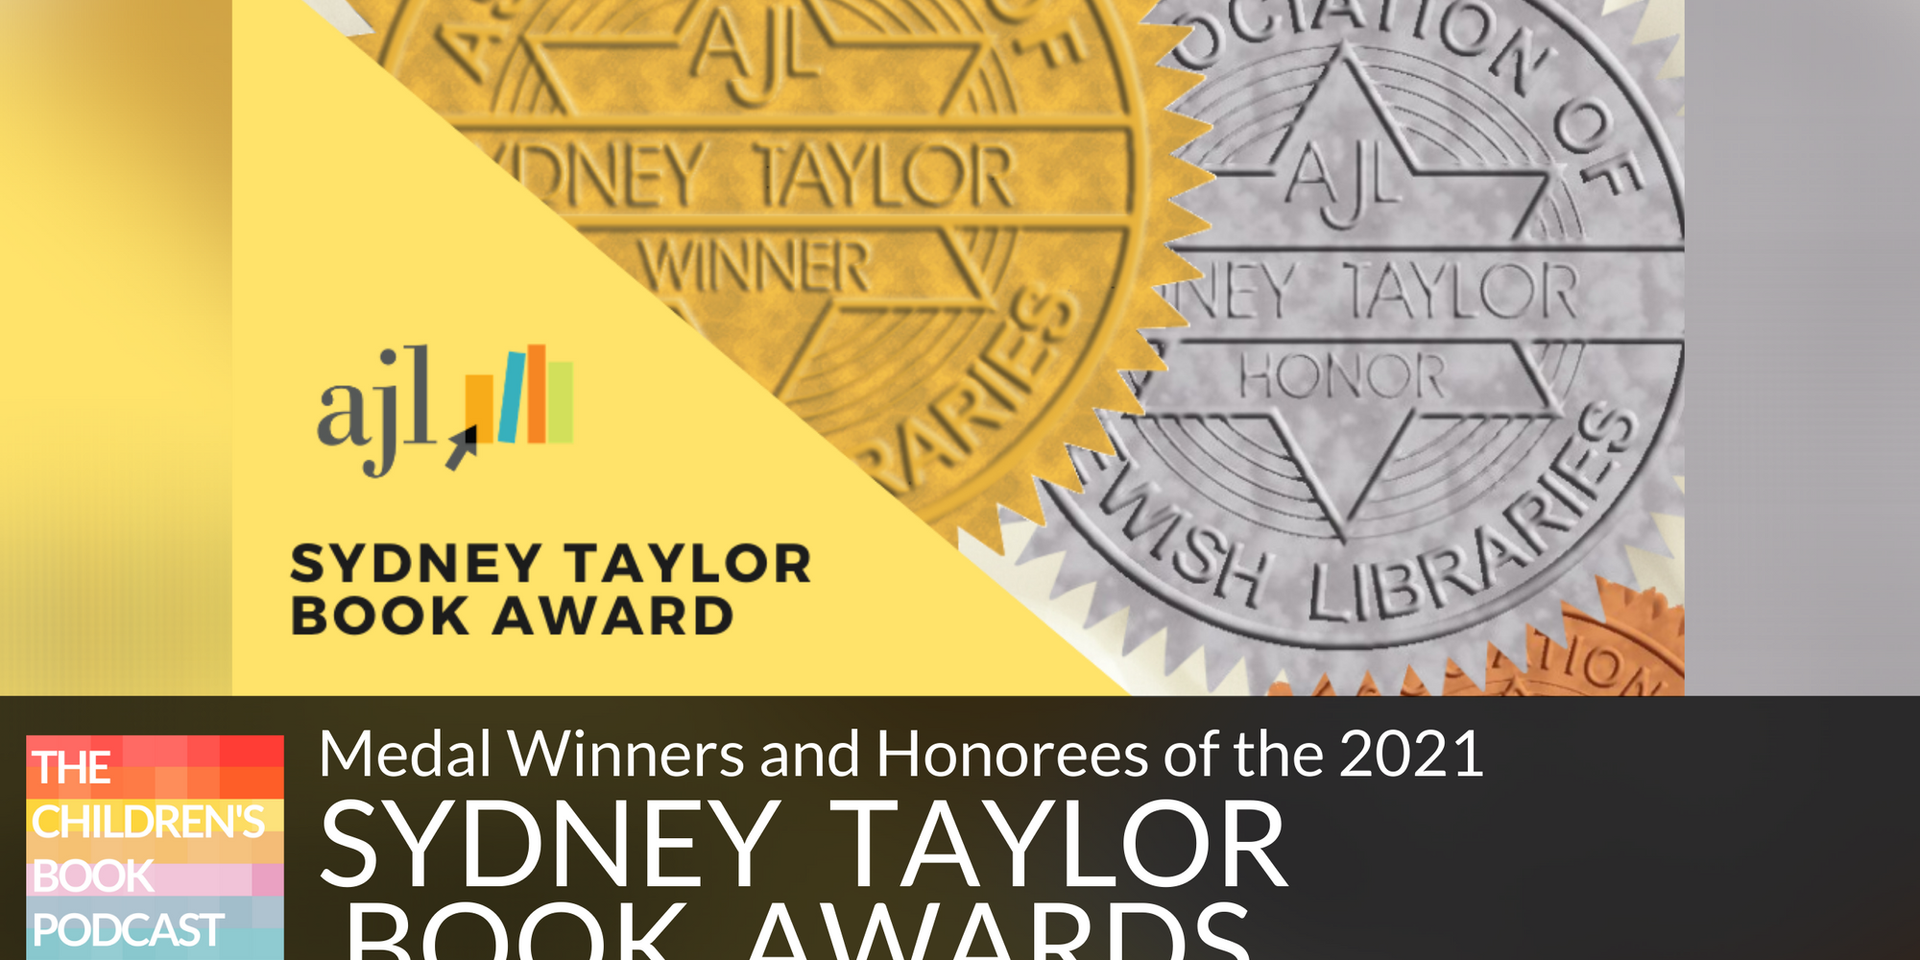 The 2021 Sydney Taylor Book Awards